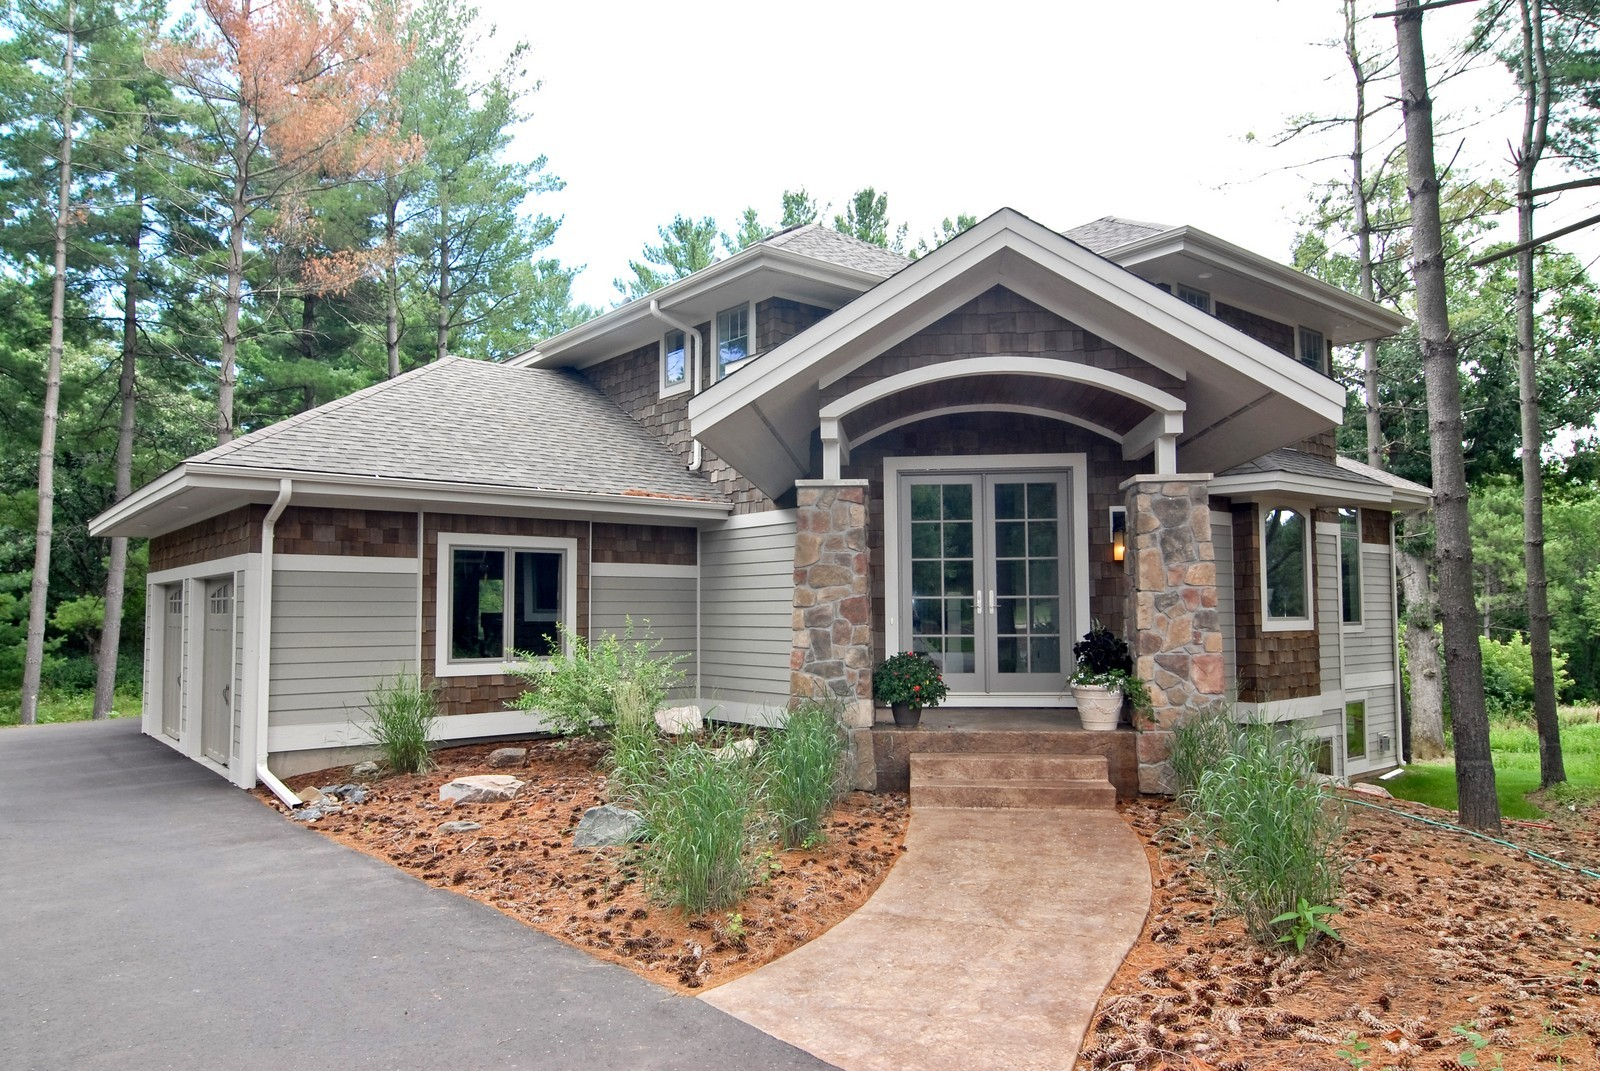 Real Estate Photography - 13220 24th Street North, West Lakeland, MN, 55082 - Front View